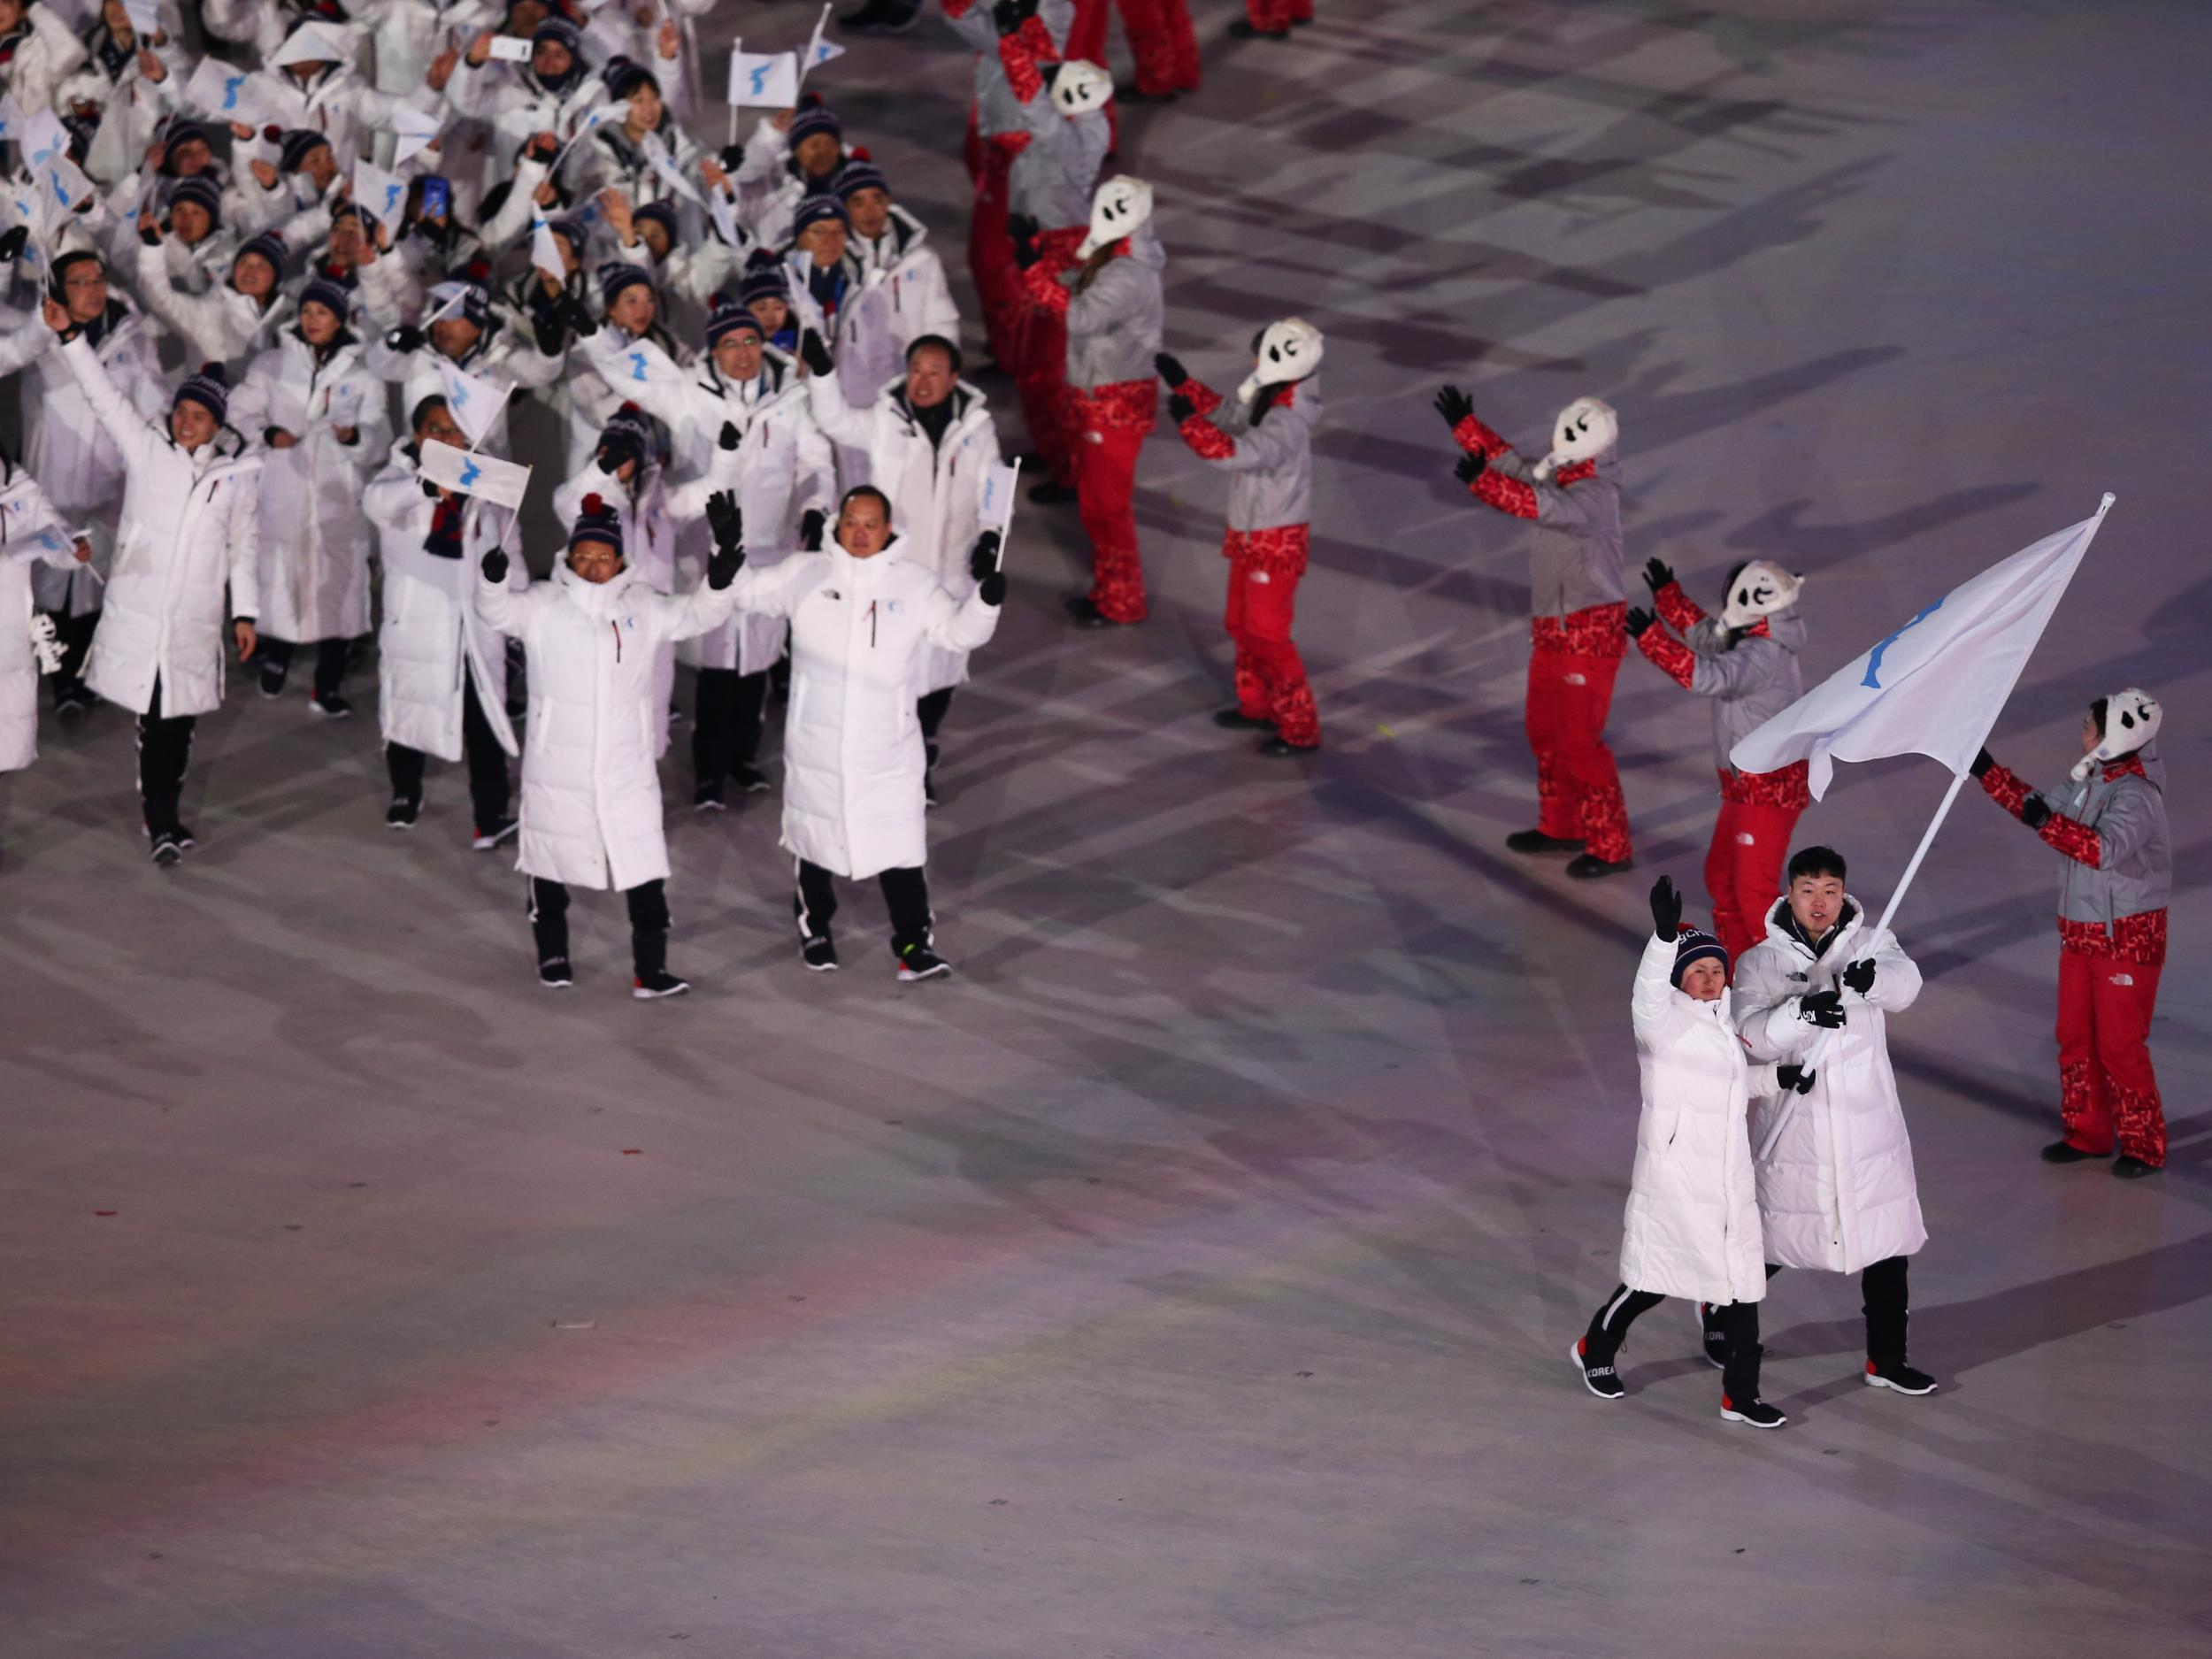 Winter Olympics officials say opening ceremony suffered cyber attack